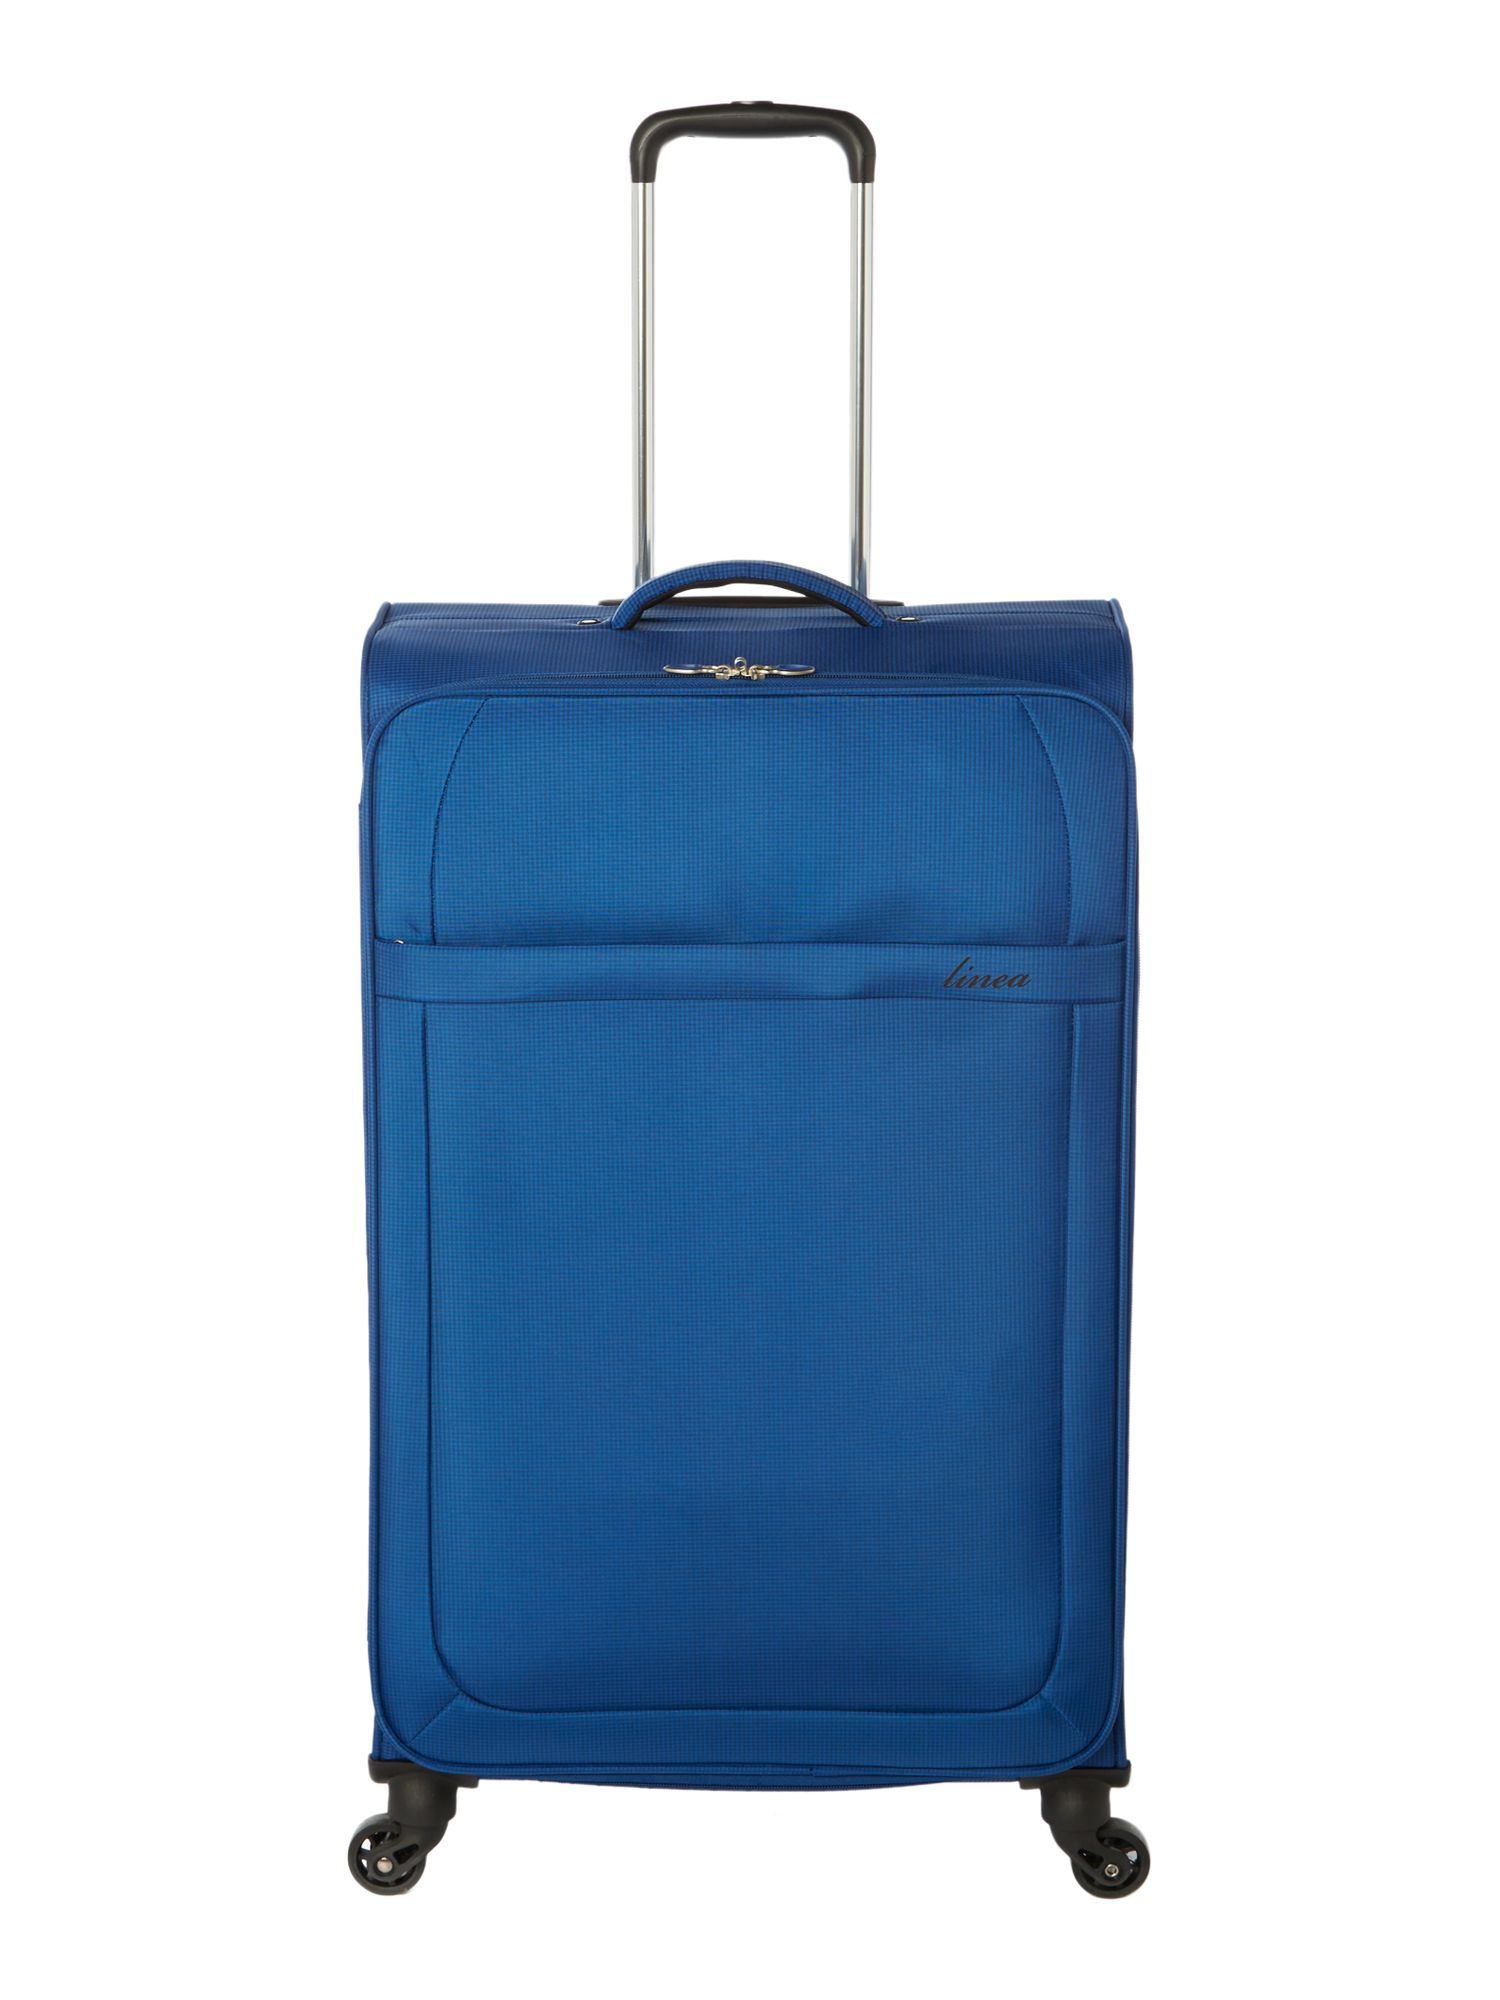 Linea Airlite black 4 wheel soft large suitcase, Blue